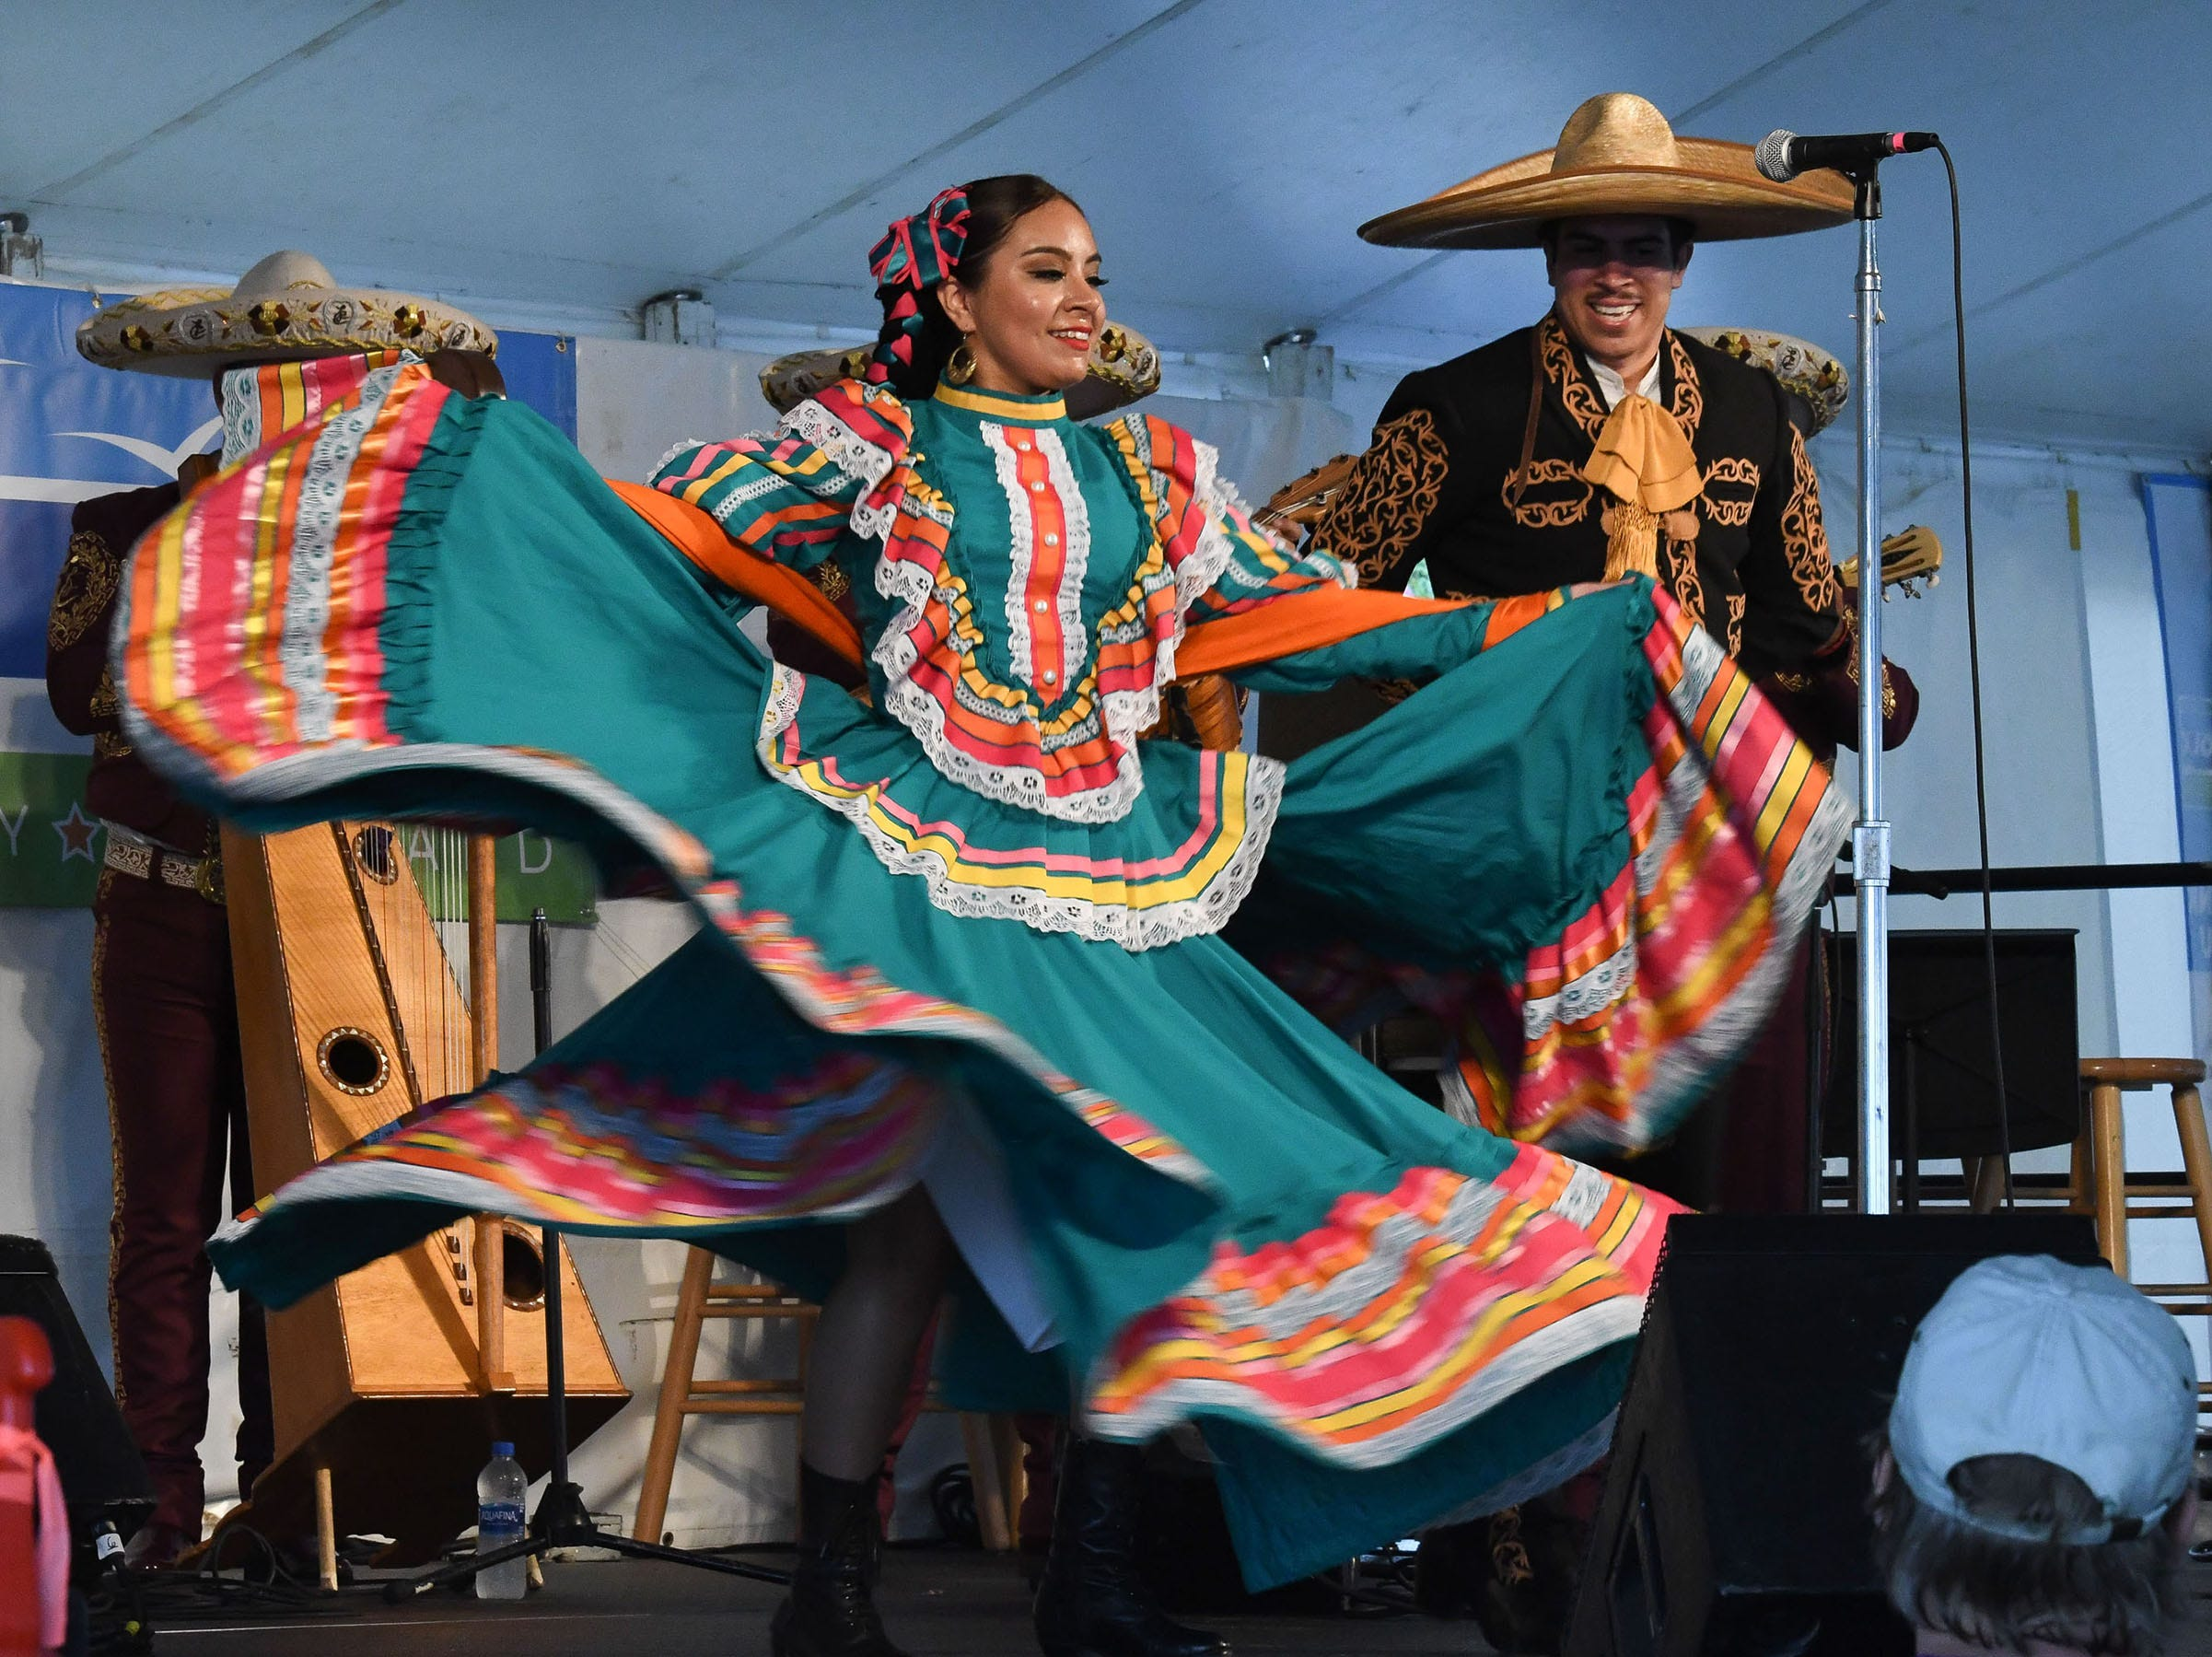 Mariachi Los Campros performed at the PRMC Stage during the 78th National Folk Festival in Salisbury, Md. on Saturday, Sept. 8, 2018.